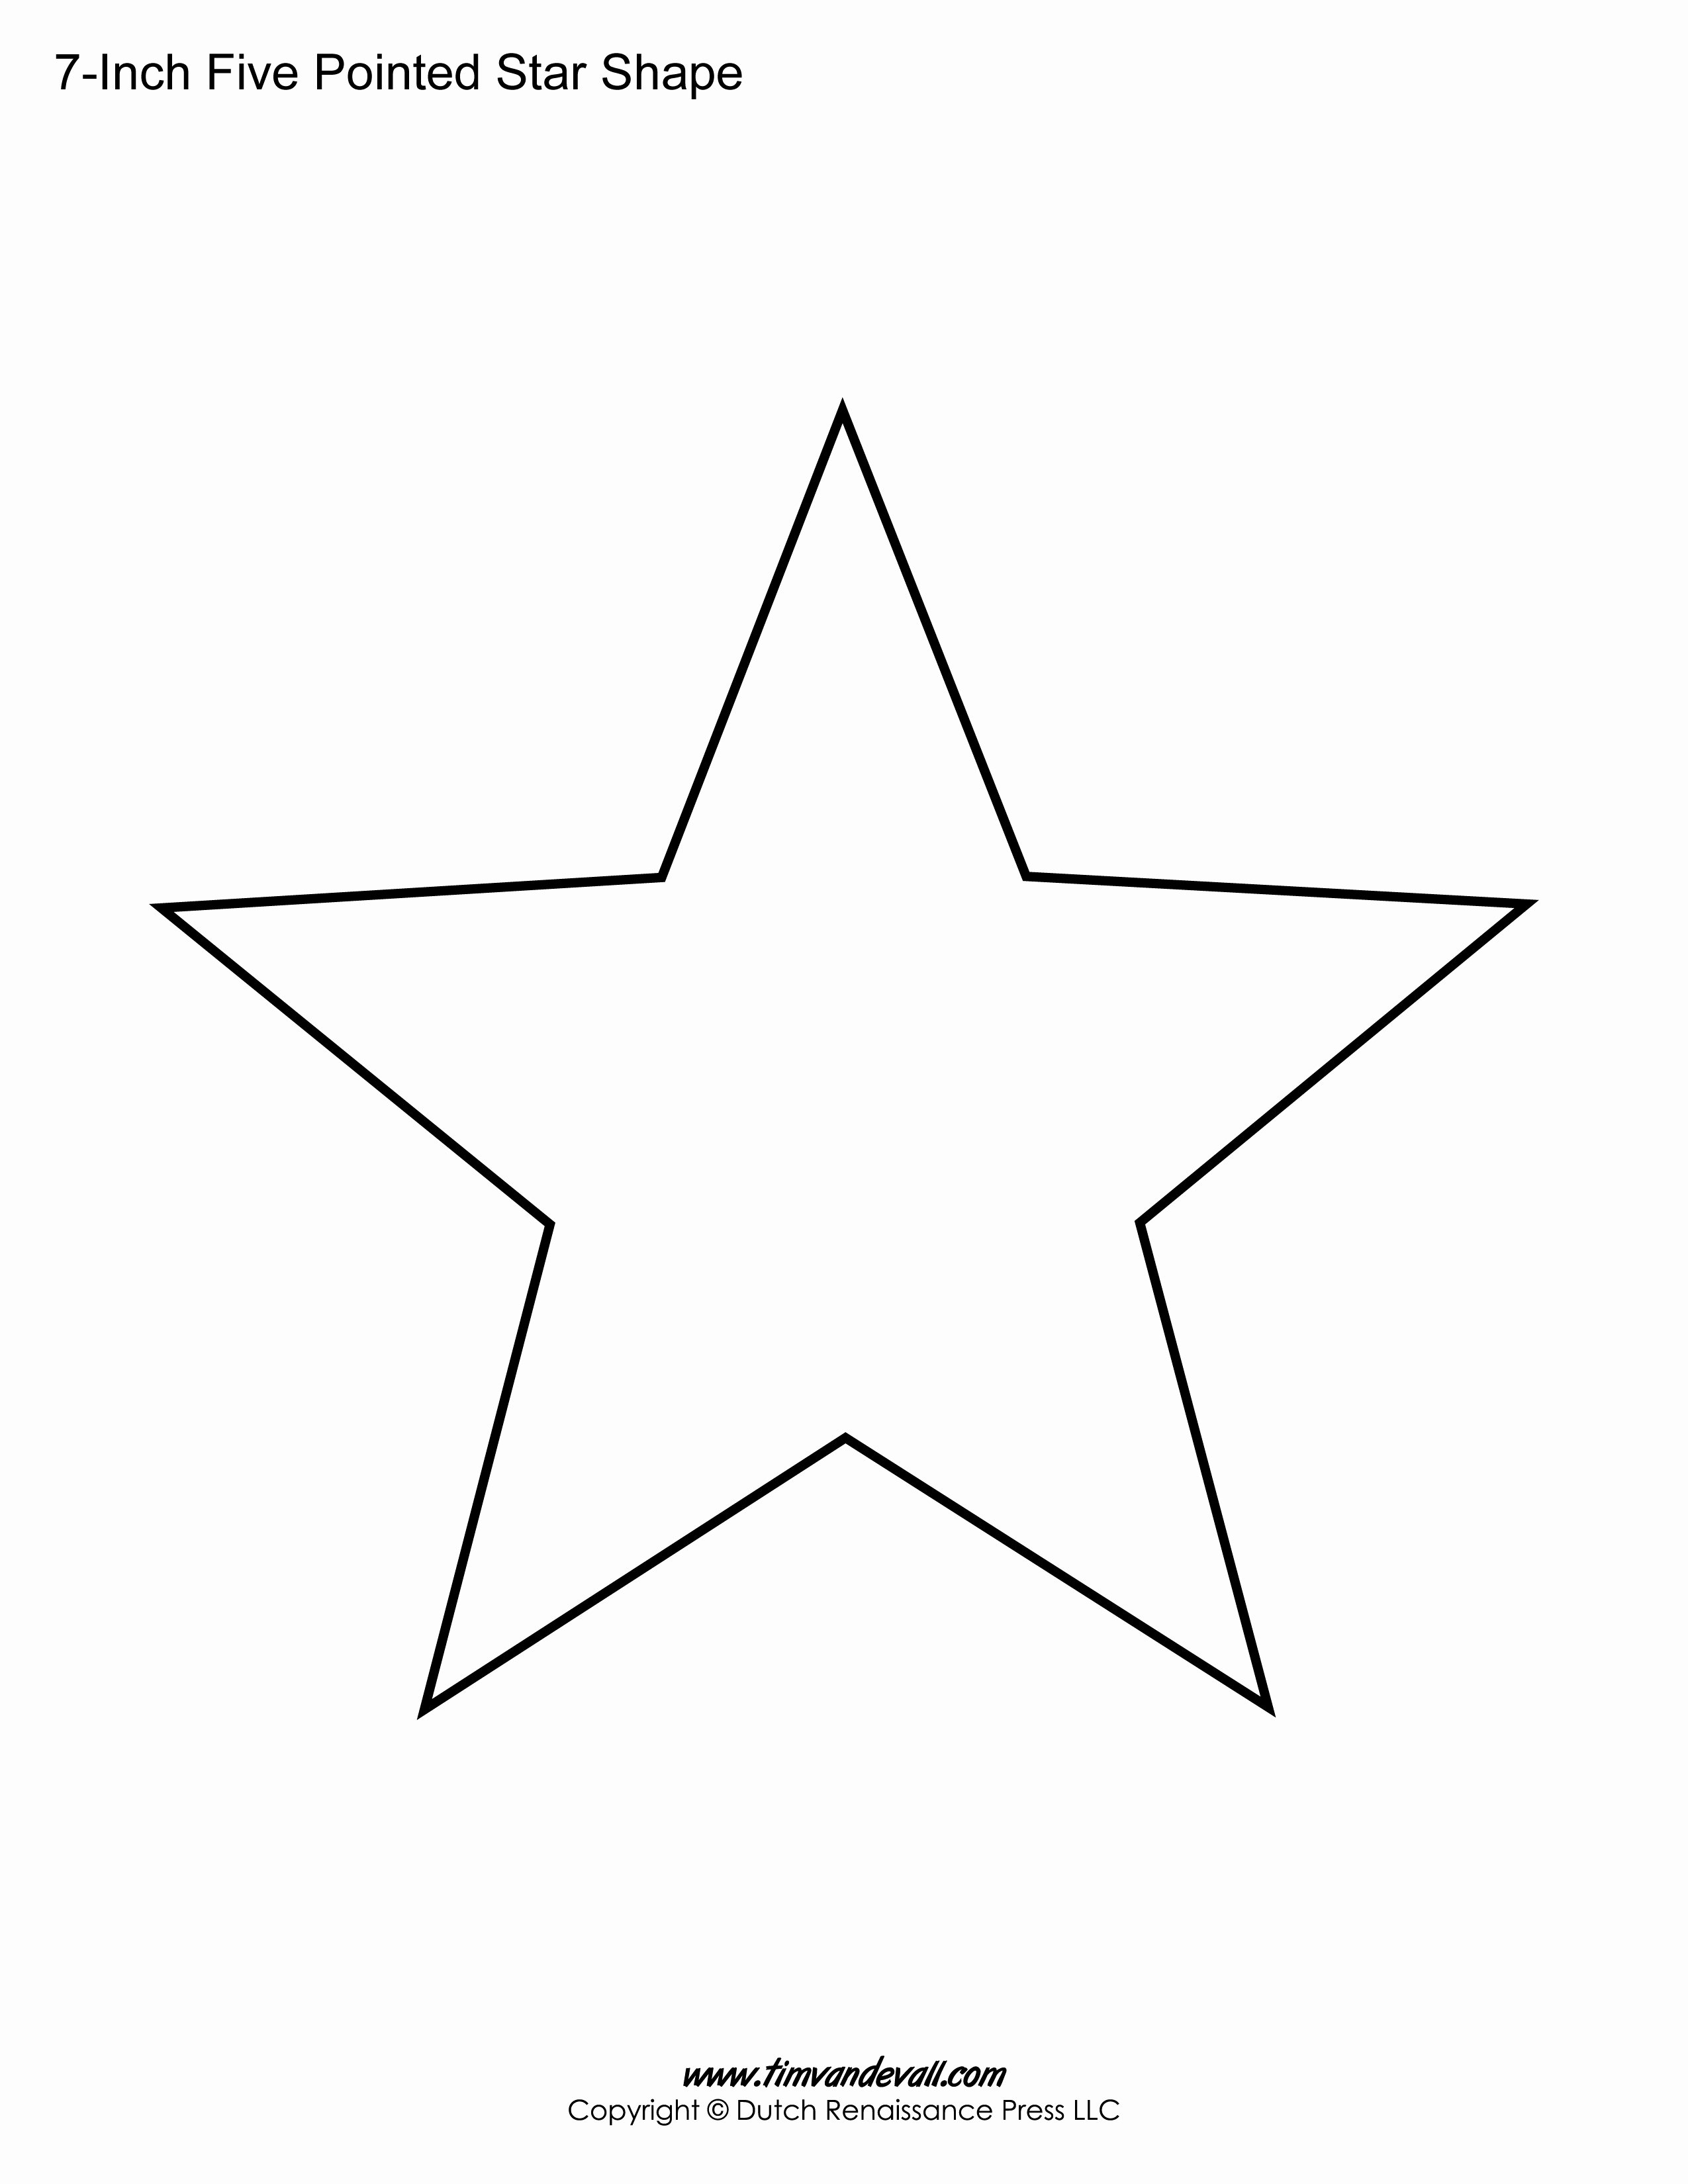 Star Stencil Printable Lovely Printable Five Pointed Star Templates Blank Shape Pdfs